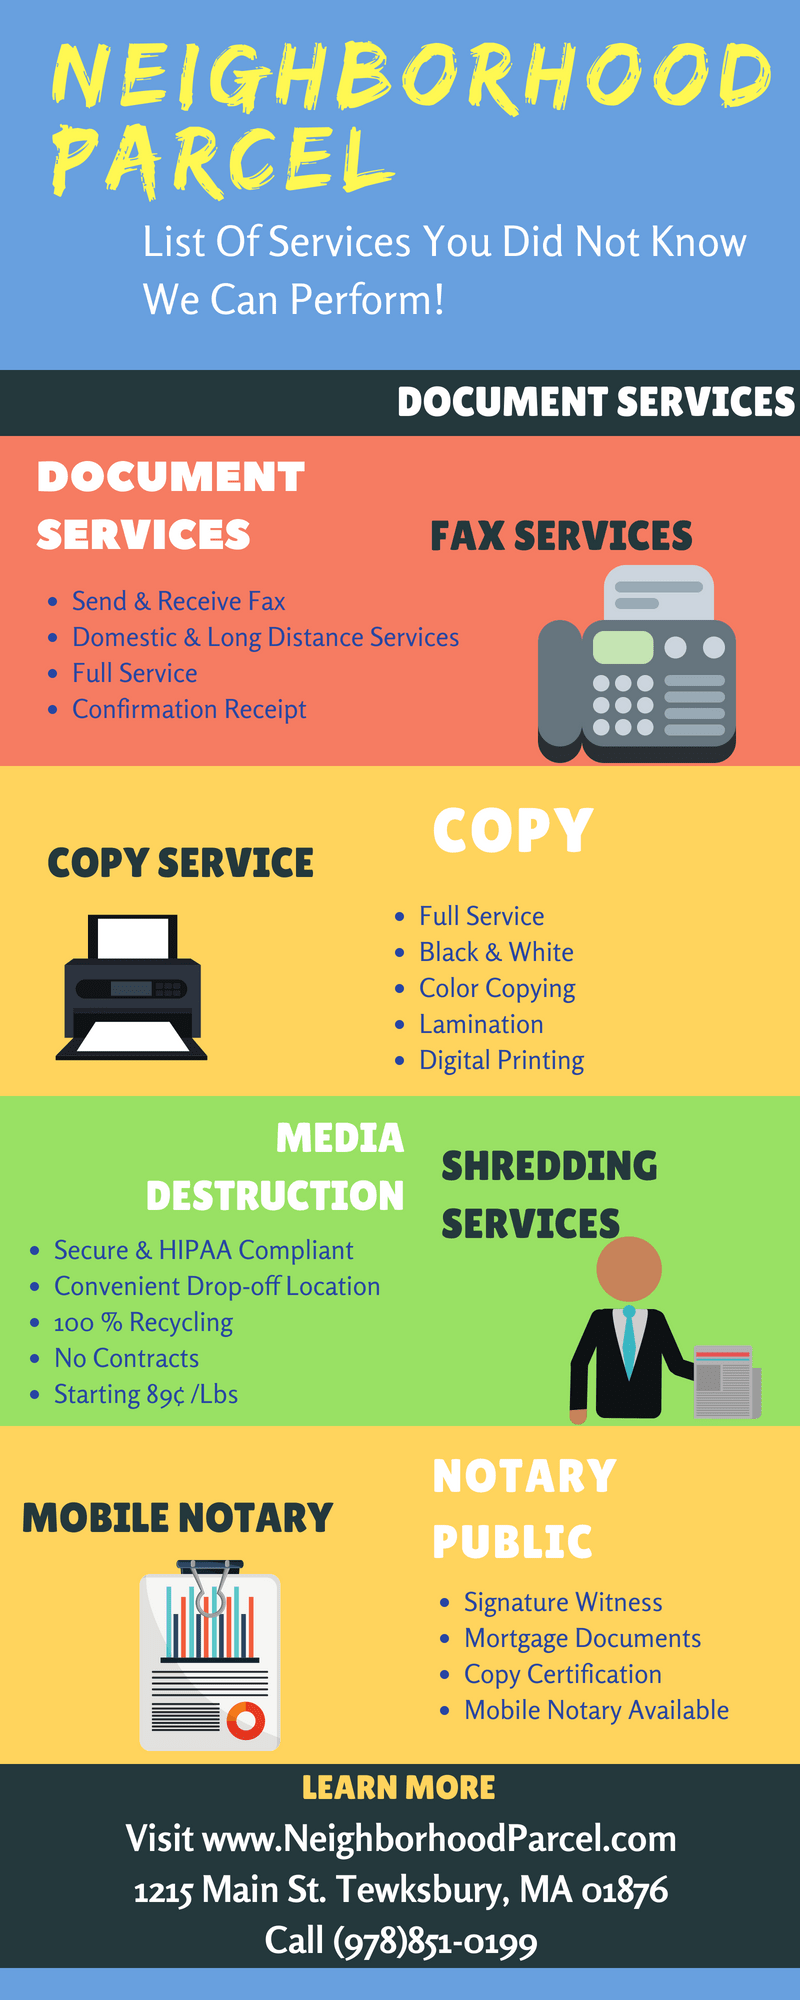 Our Service Documents